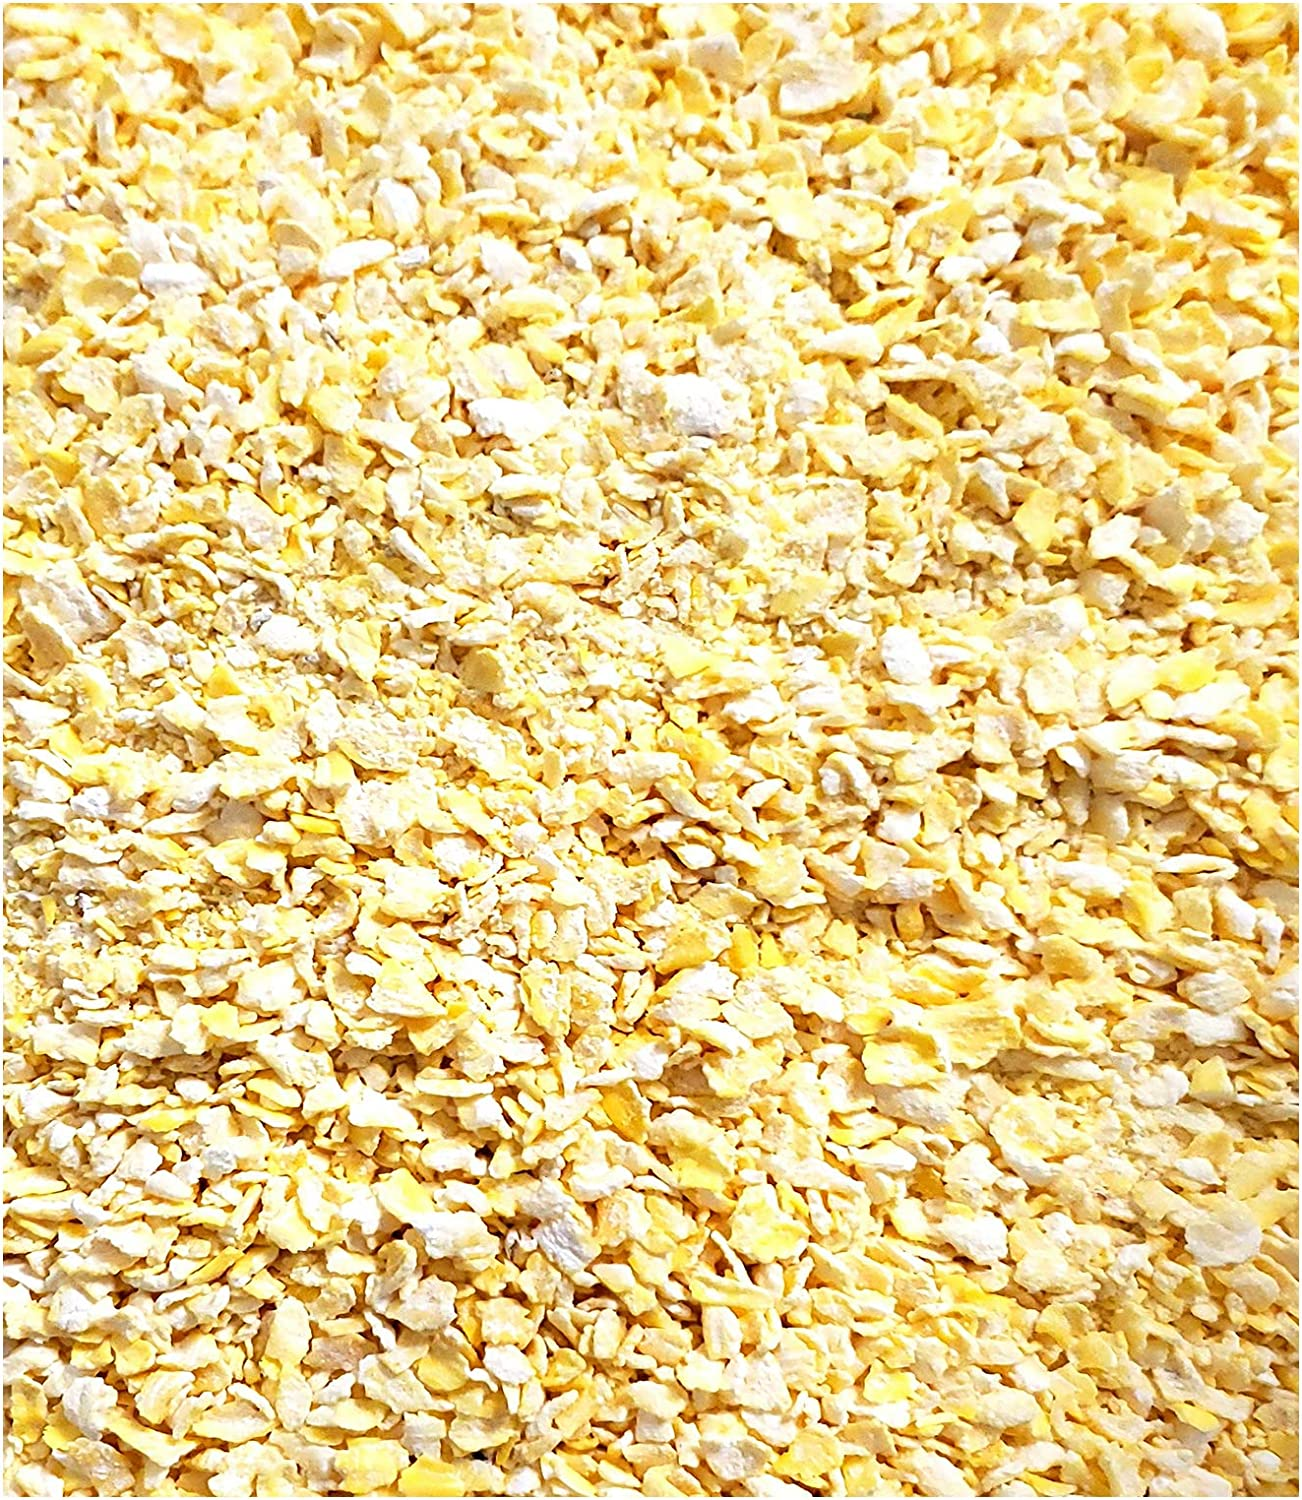 Brewmaster - AJ10E Flaked Corn (Maize) - 5 lb Bag 81ZNQZI2BsuL